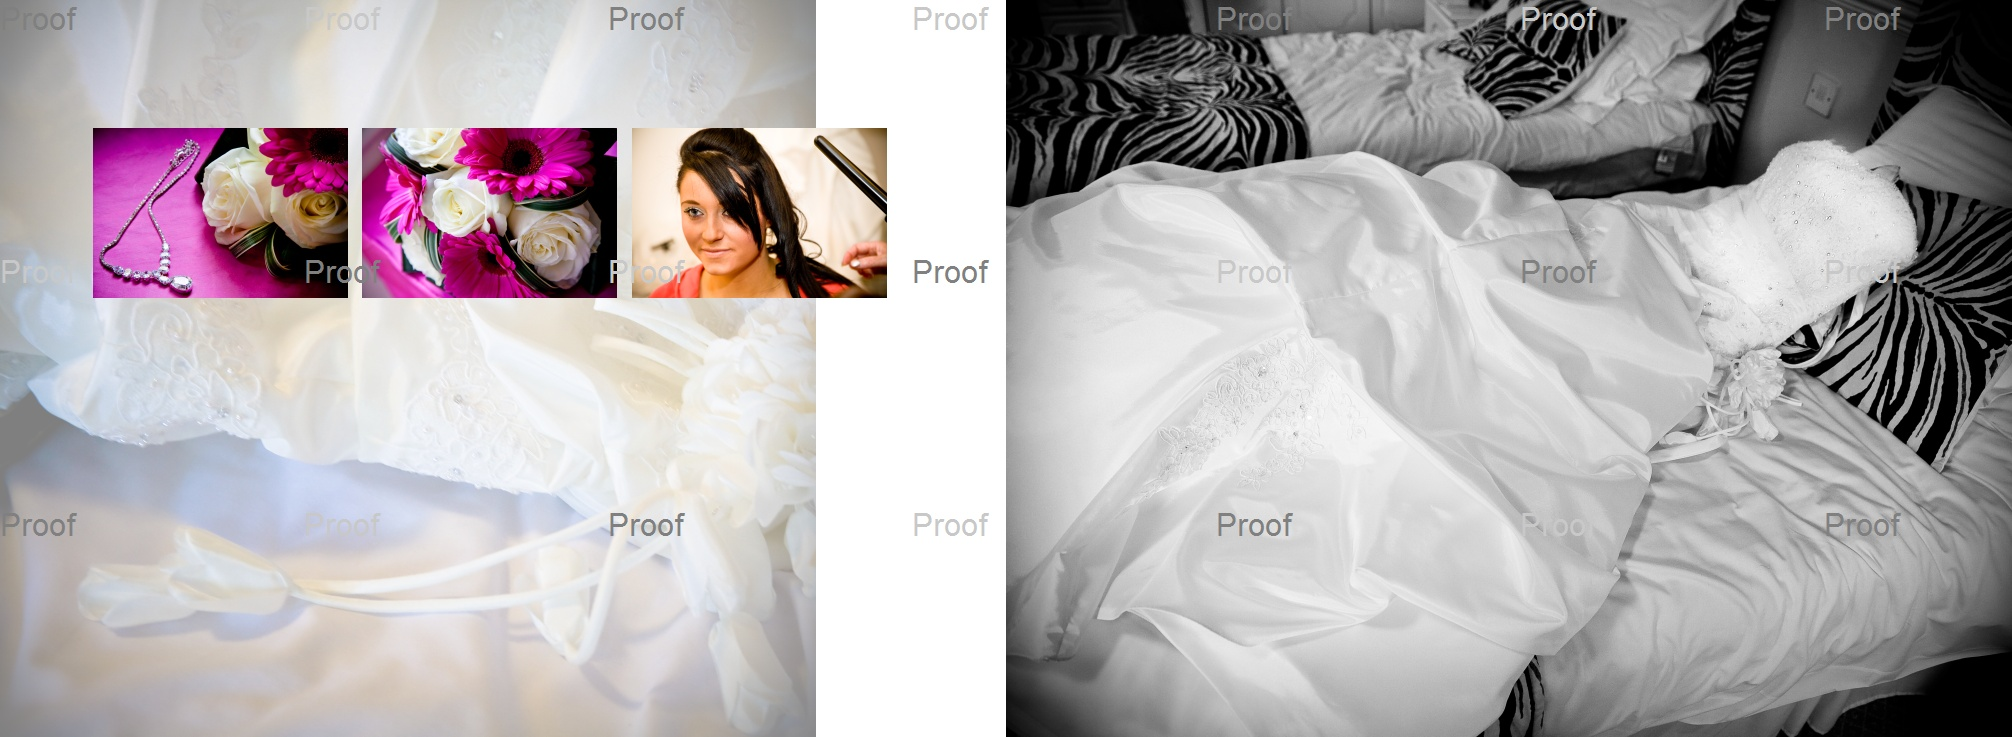 pages 2-3 of wedding storybook album with wedding dress on the bed